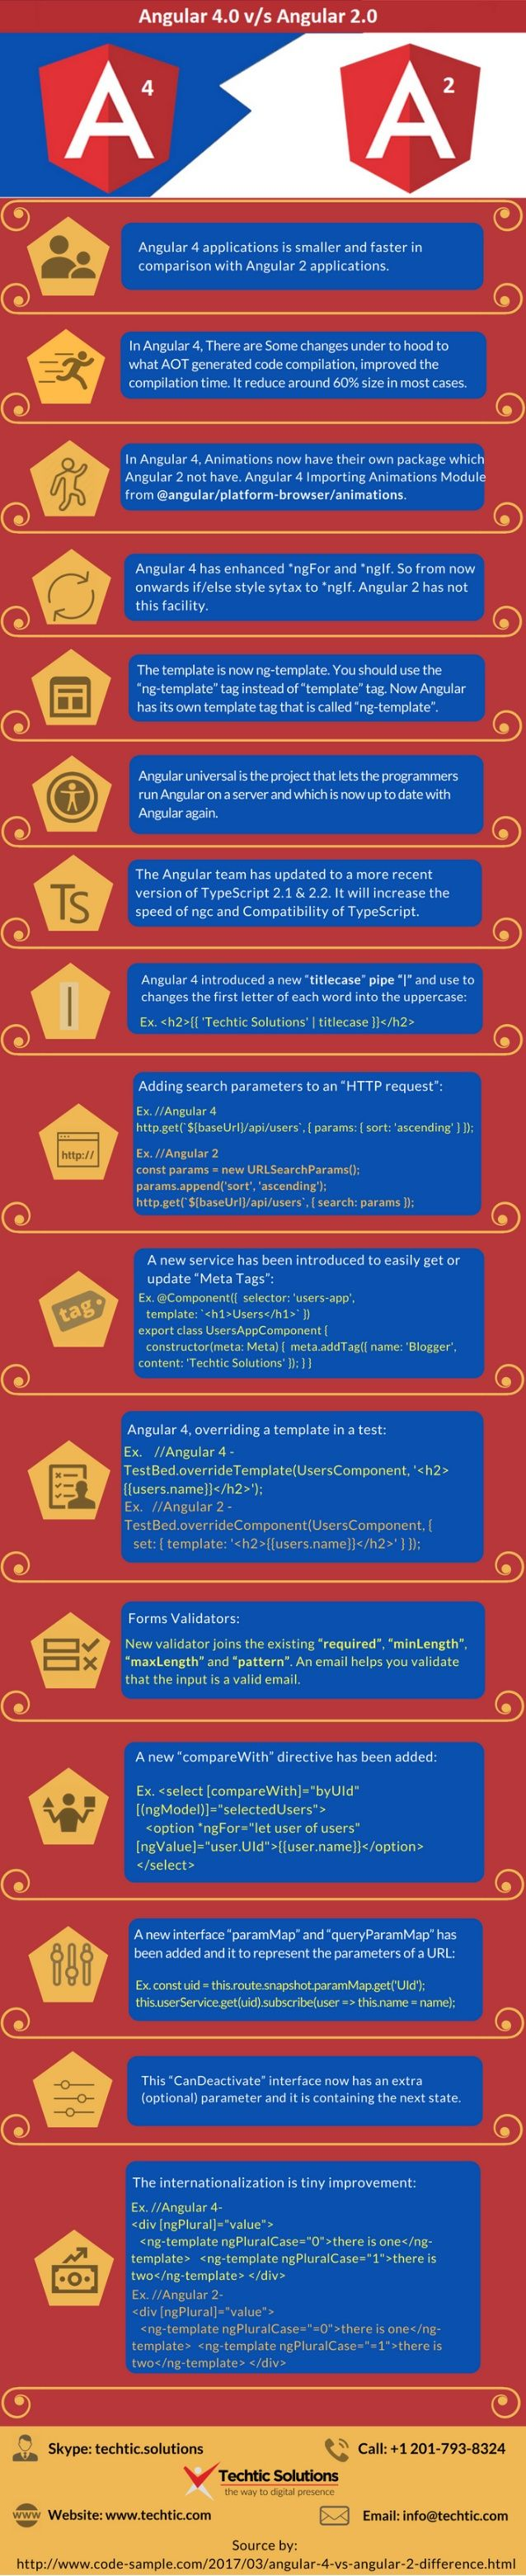 Techtic Solutions prepared infographics of difference between recently launched AngularJS version Angular 4 and Angular 2. You can also find features of Angular 4 in it. If you want more information about AngularJS then call us @ +1 201-793-8324 or visit us @ https://www.techtic.com/angularjs-development-company/    #AngularDevelopmentCompany #AngularJSDevelopment #AngularDevelopment #AngularJS #AngularJSDevelopmentCompany #HireAngularJSDeveloper #HireAngularDeveloper